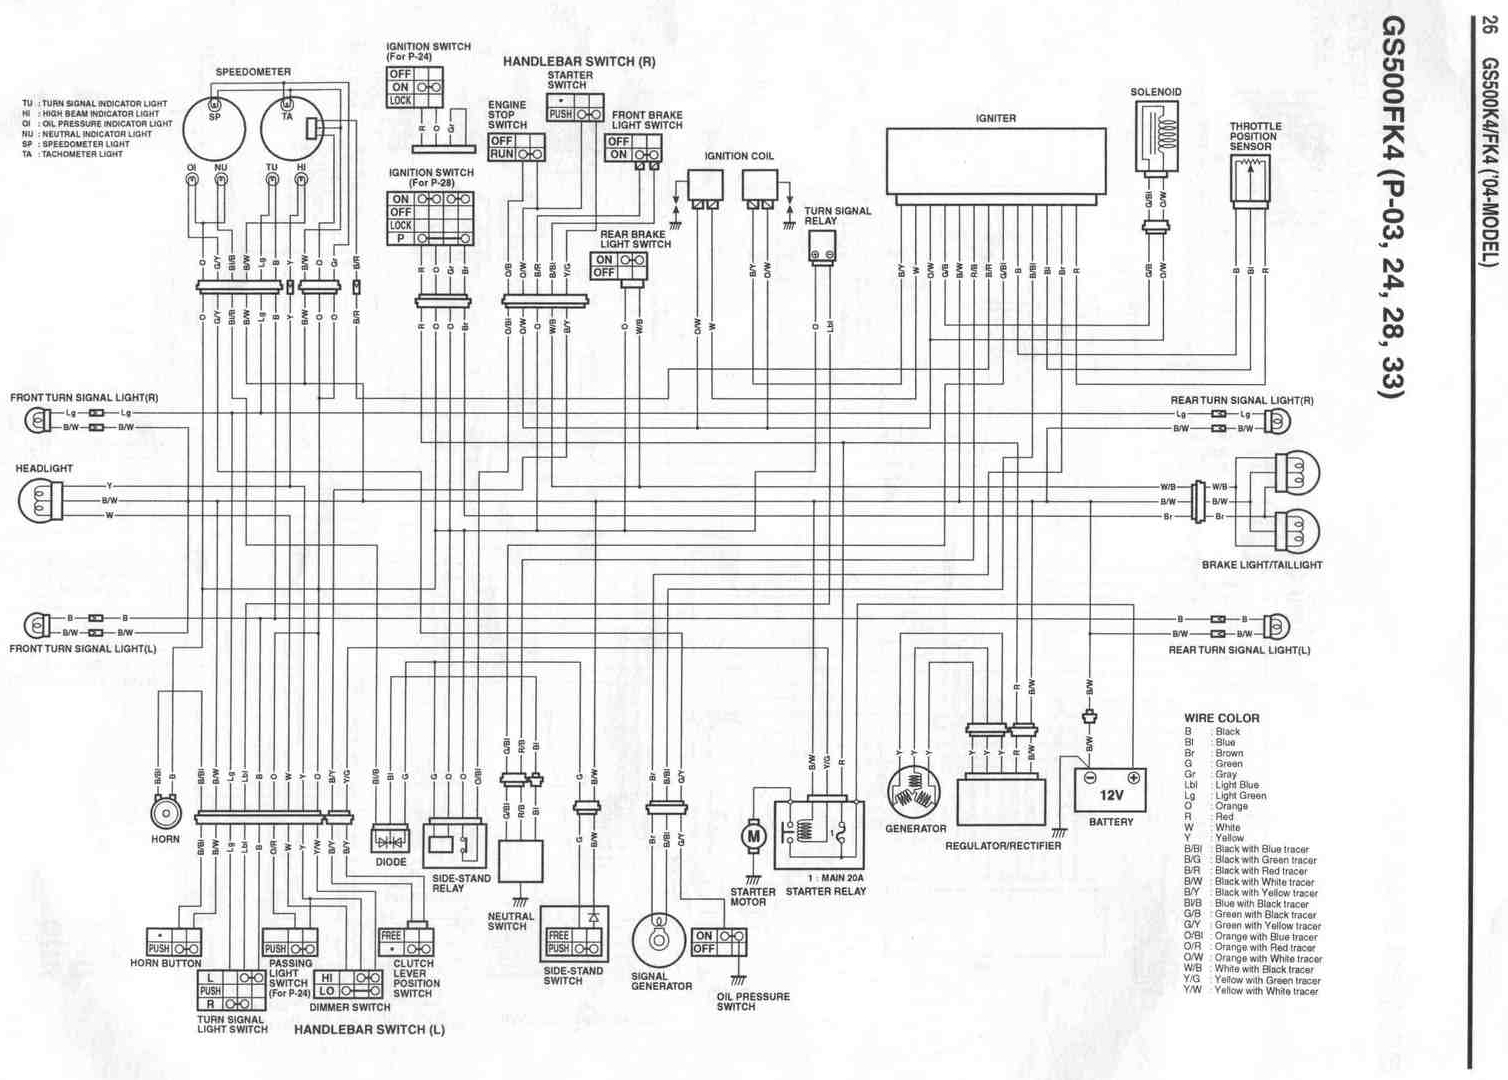 Suzuki_WiringDiagram_04 wire diagram gs500f 06 Wiring Harness Replacement Hazard at reclaimingppi.co